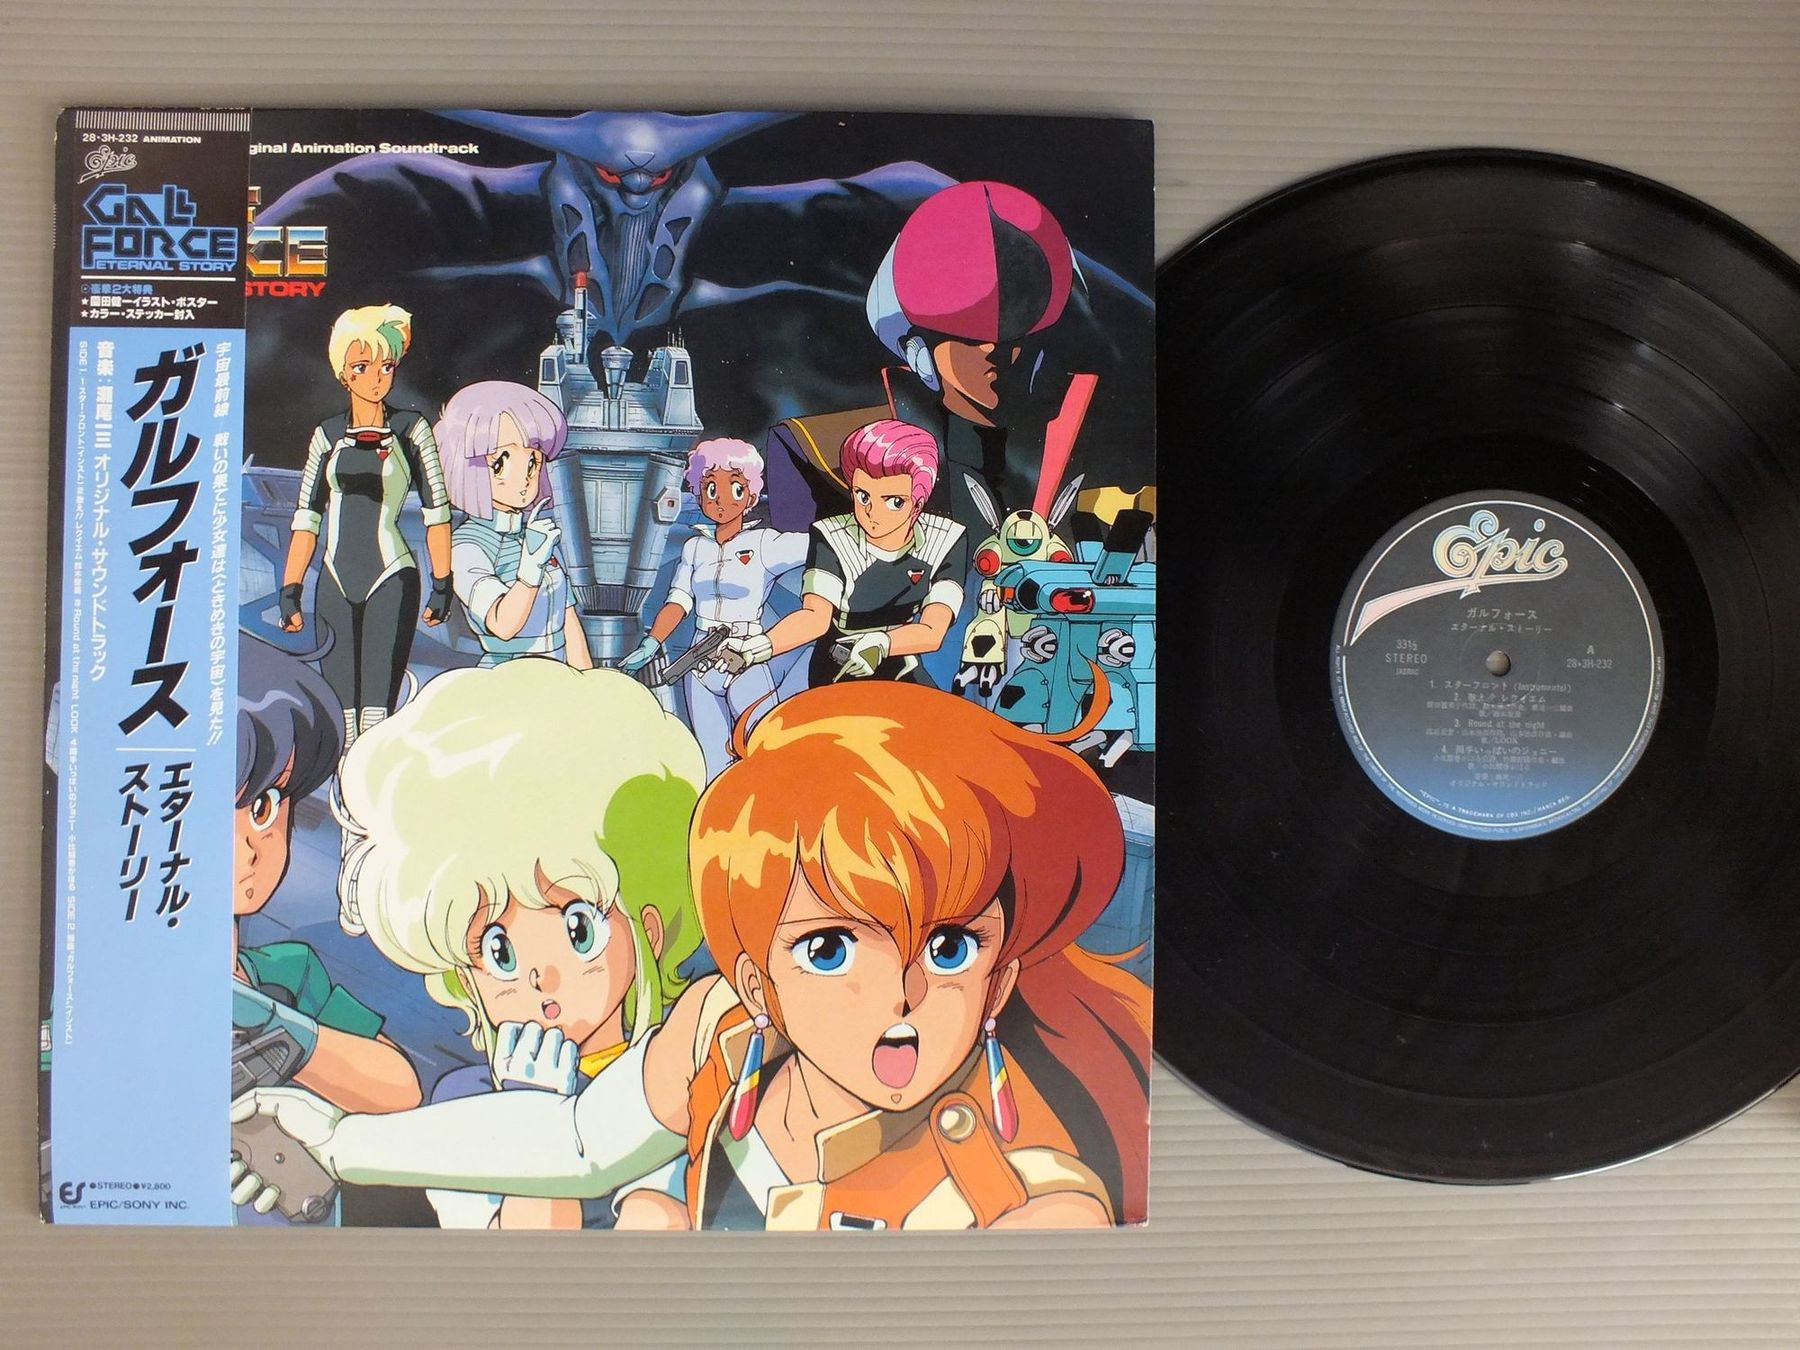 ANIME GALL FORCE - ETERNAL STORY - 33T